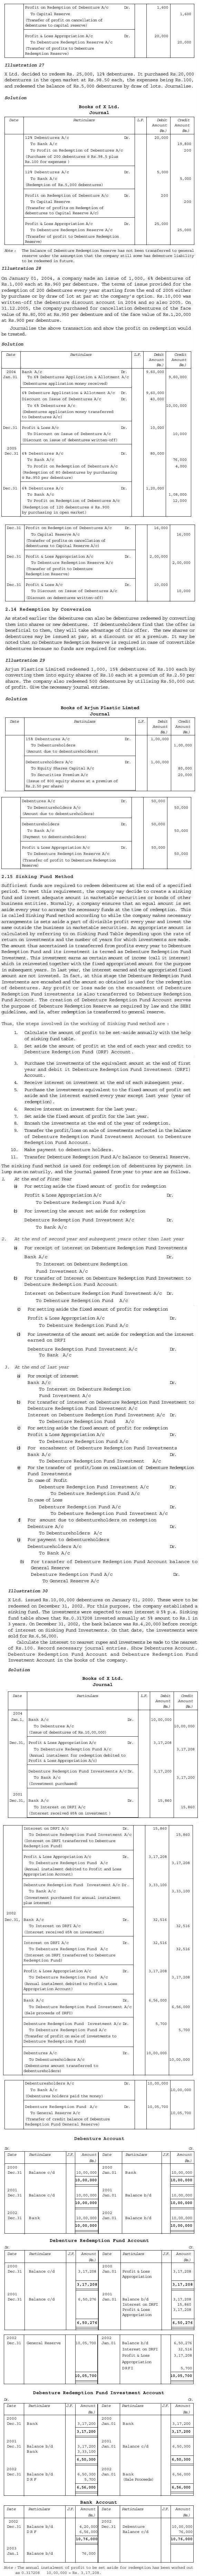 NCERT Class XII Accountancy II Chapter 2 - Issue and Redemption of Debentures